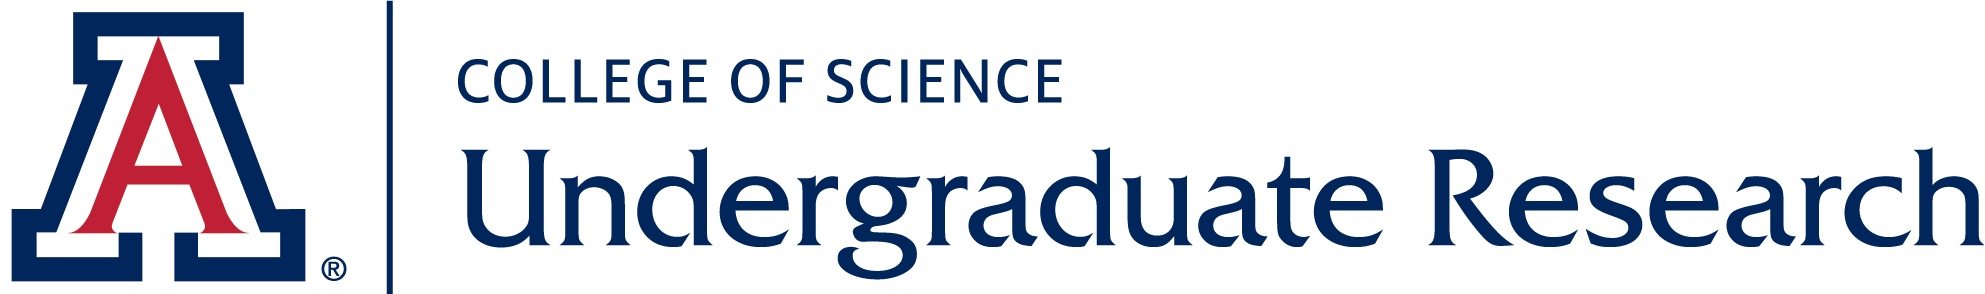 Undergraduate Research | University of Arizona | Home